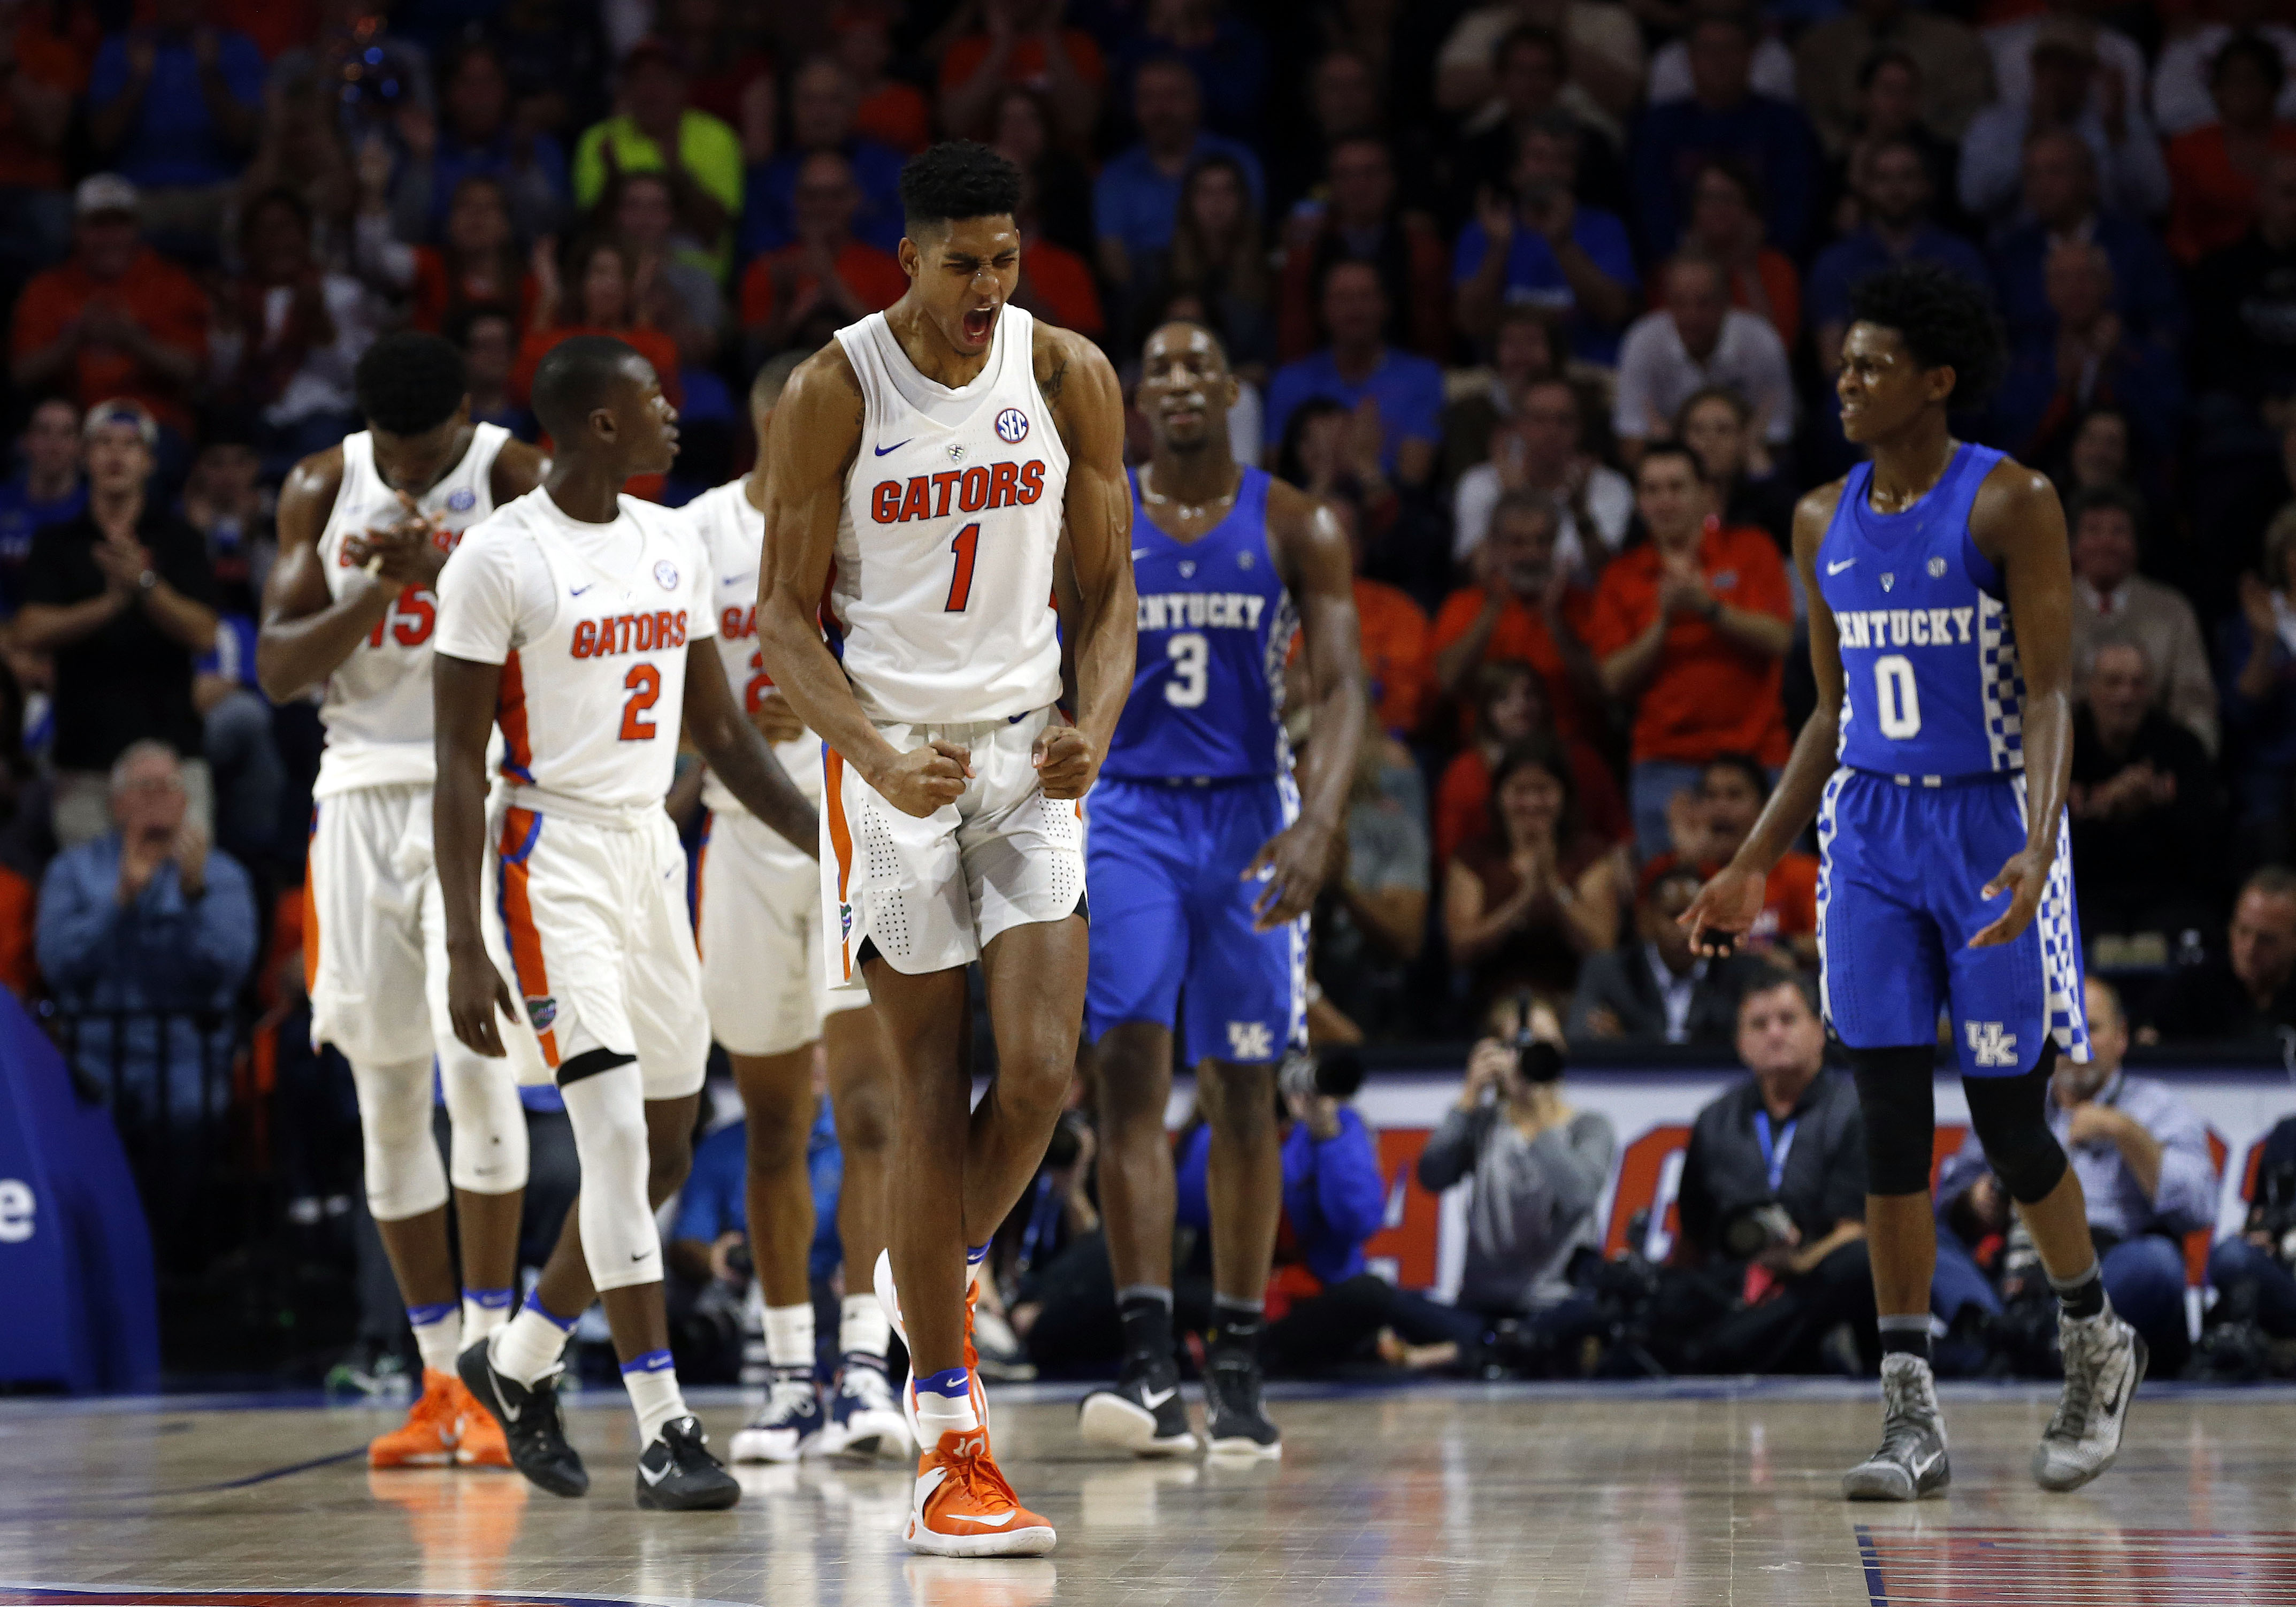 How To Watch Kentucky Wildcats Basketball Vs Florida: Kentucky Basketball: Wildcats Suffer Worst Loss Of The